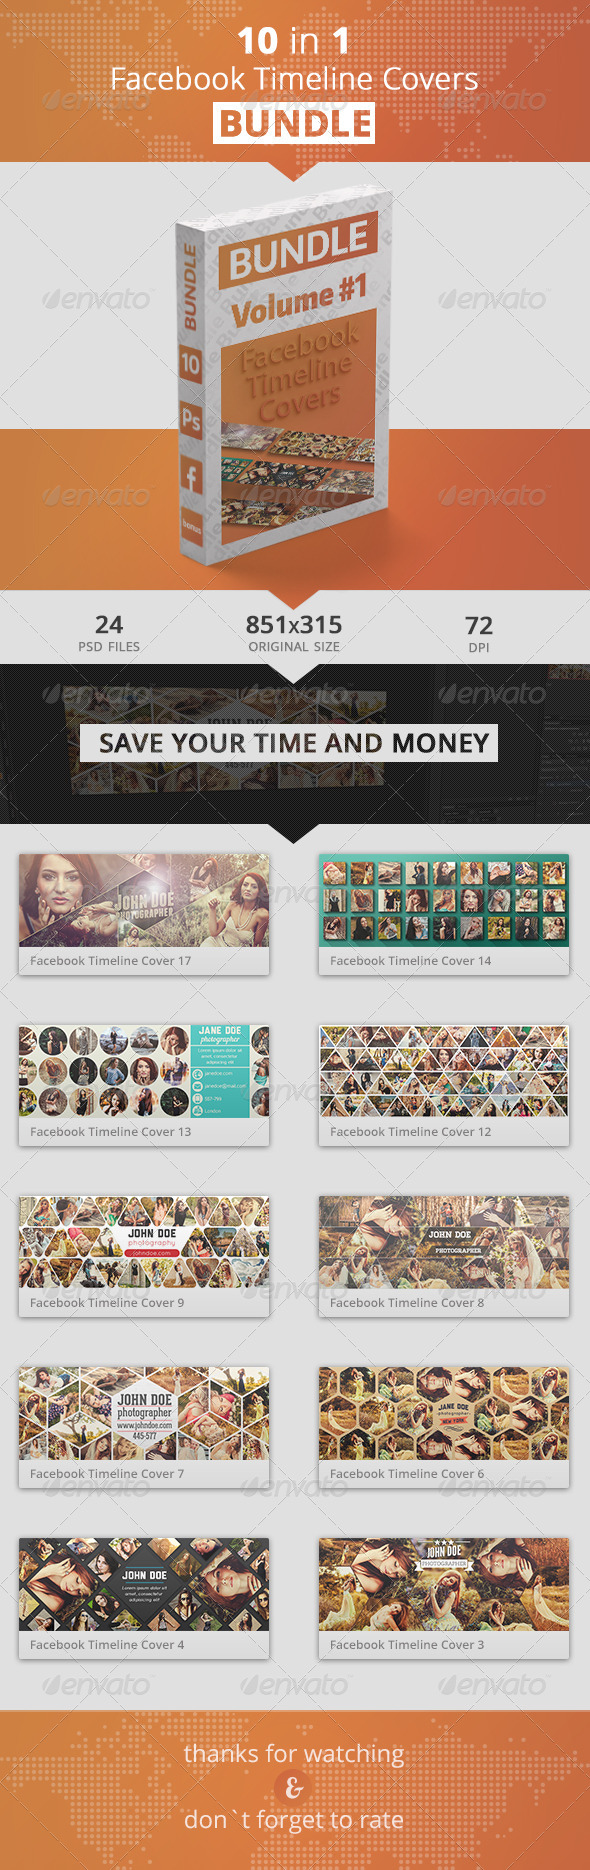 GraphicRiver Facebook Timeline Covers Bundle 1 8745867